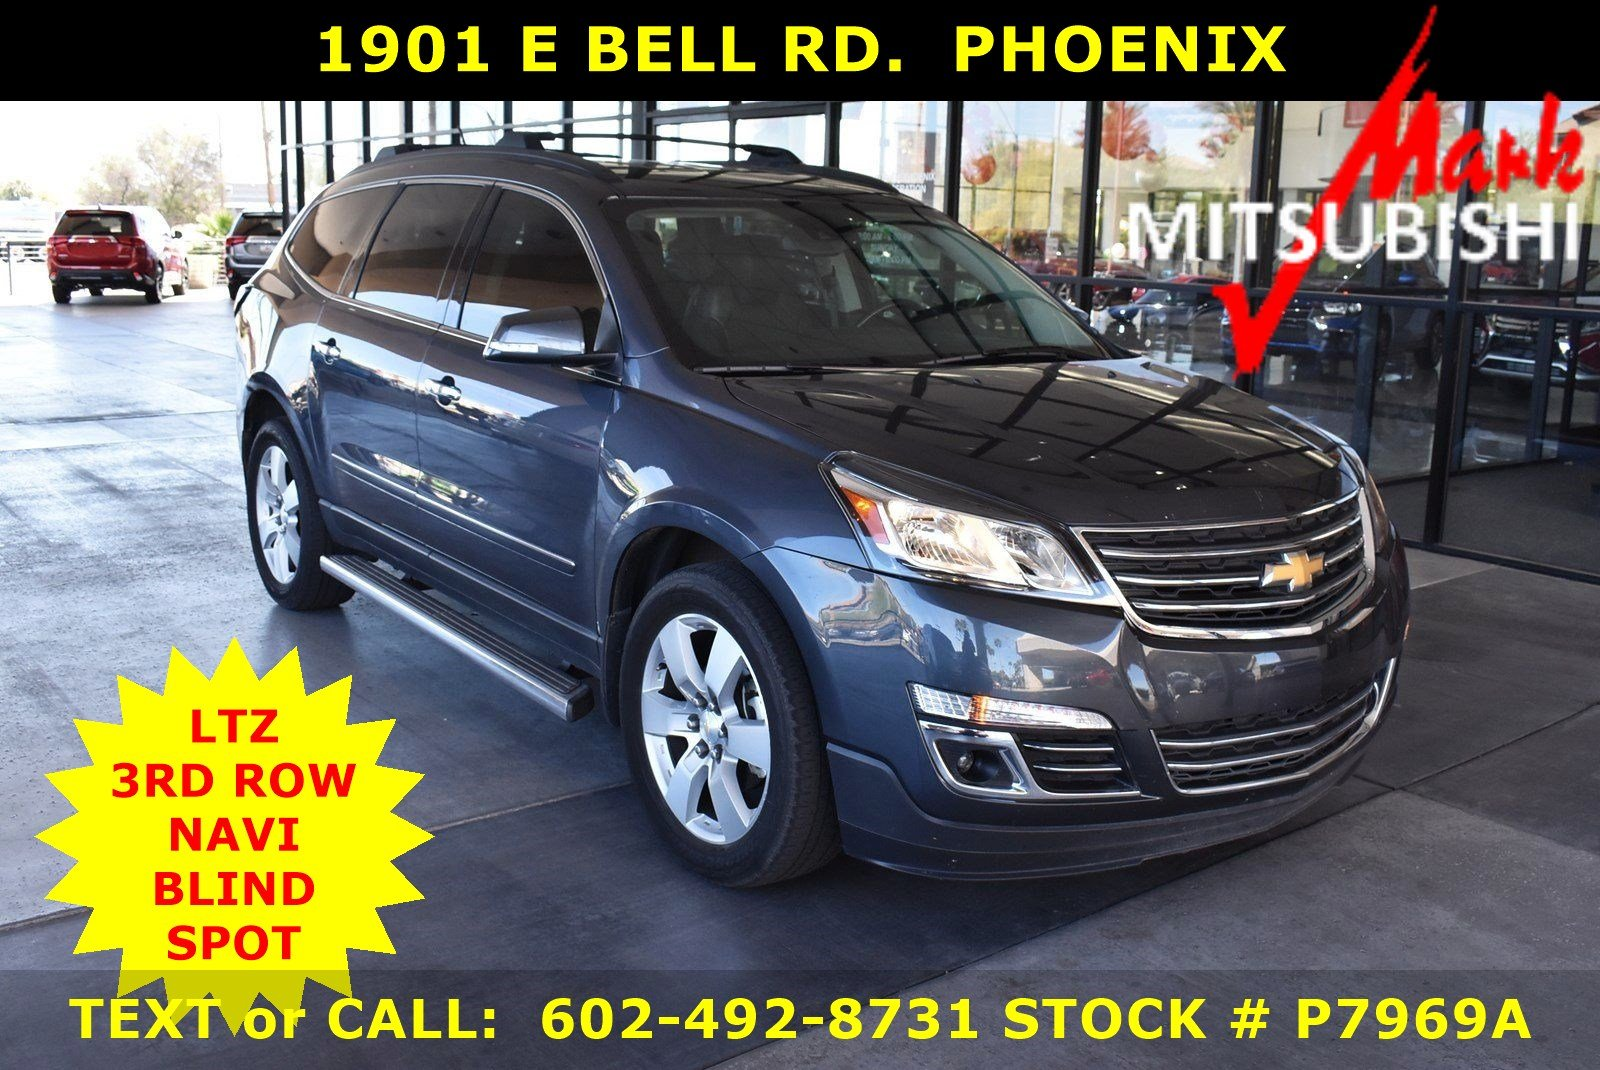 Pre-Owned 2014 Chevrolet Traverse LTZ 3 ROW